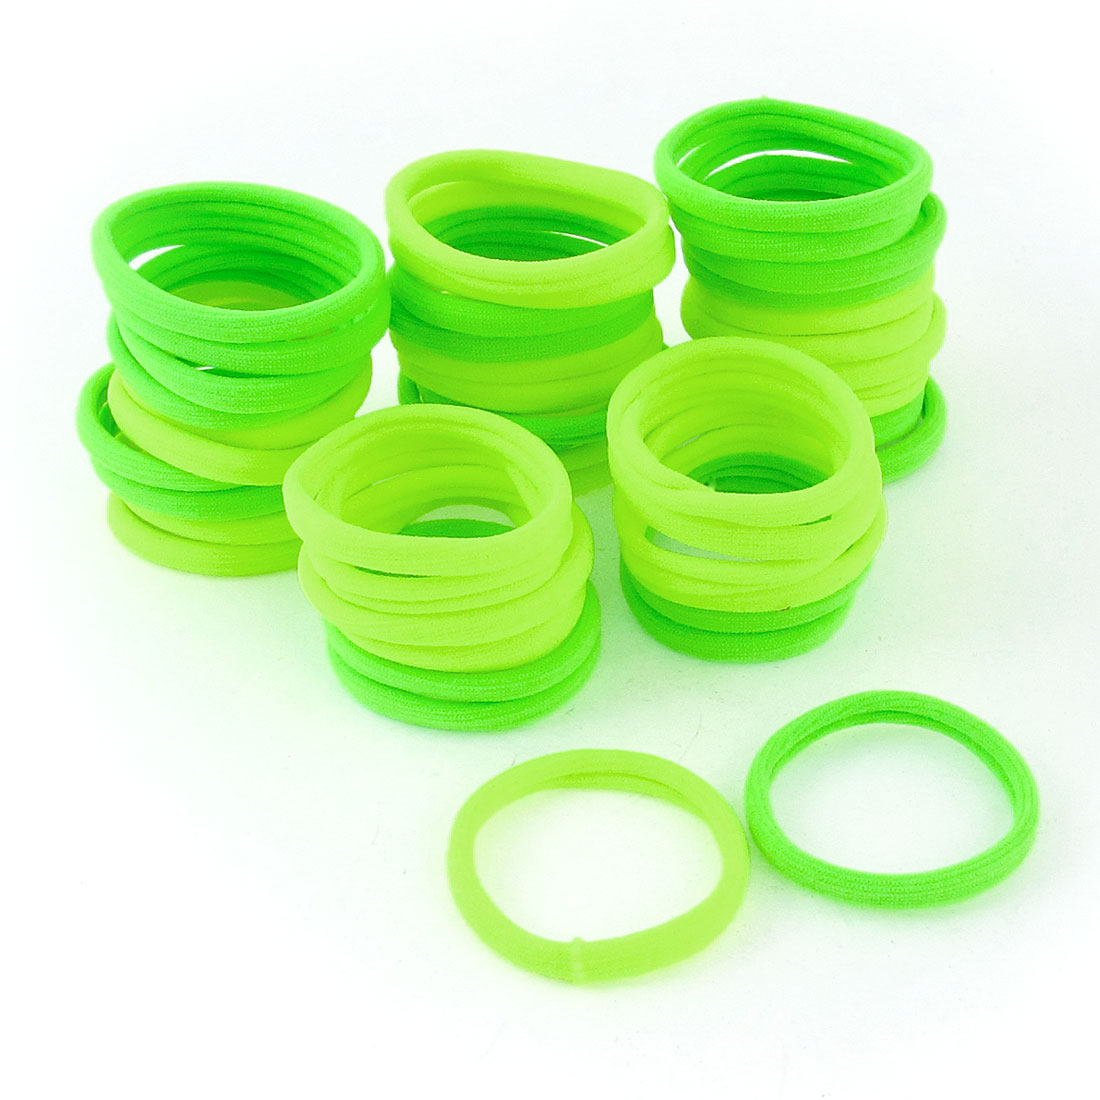 48 Pcs Yellow Green Elastic Ponytail Holders Hair Bands for Women